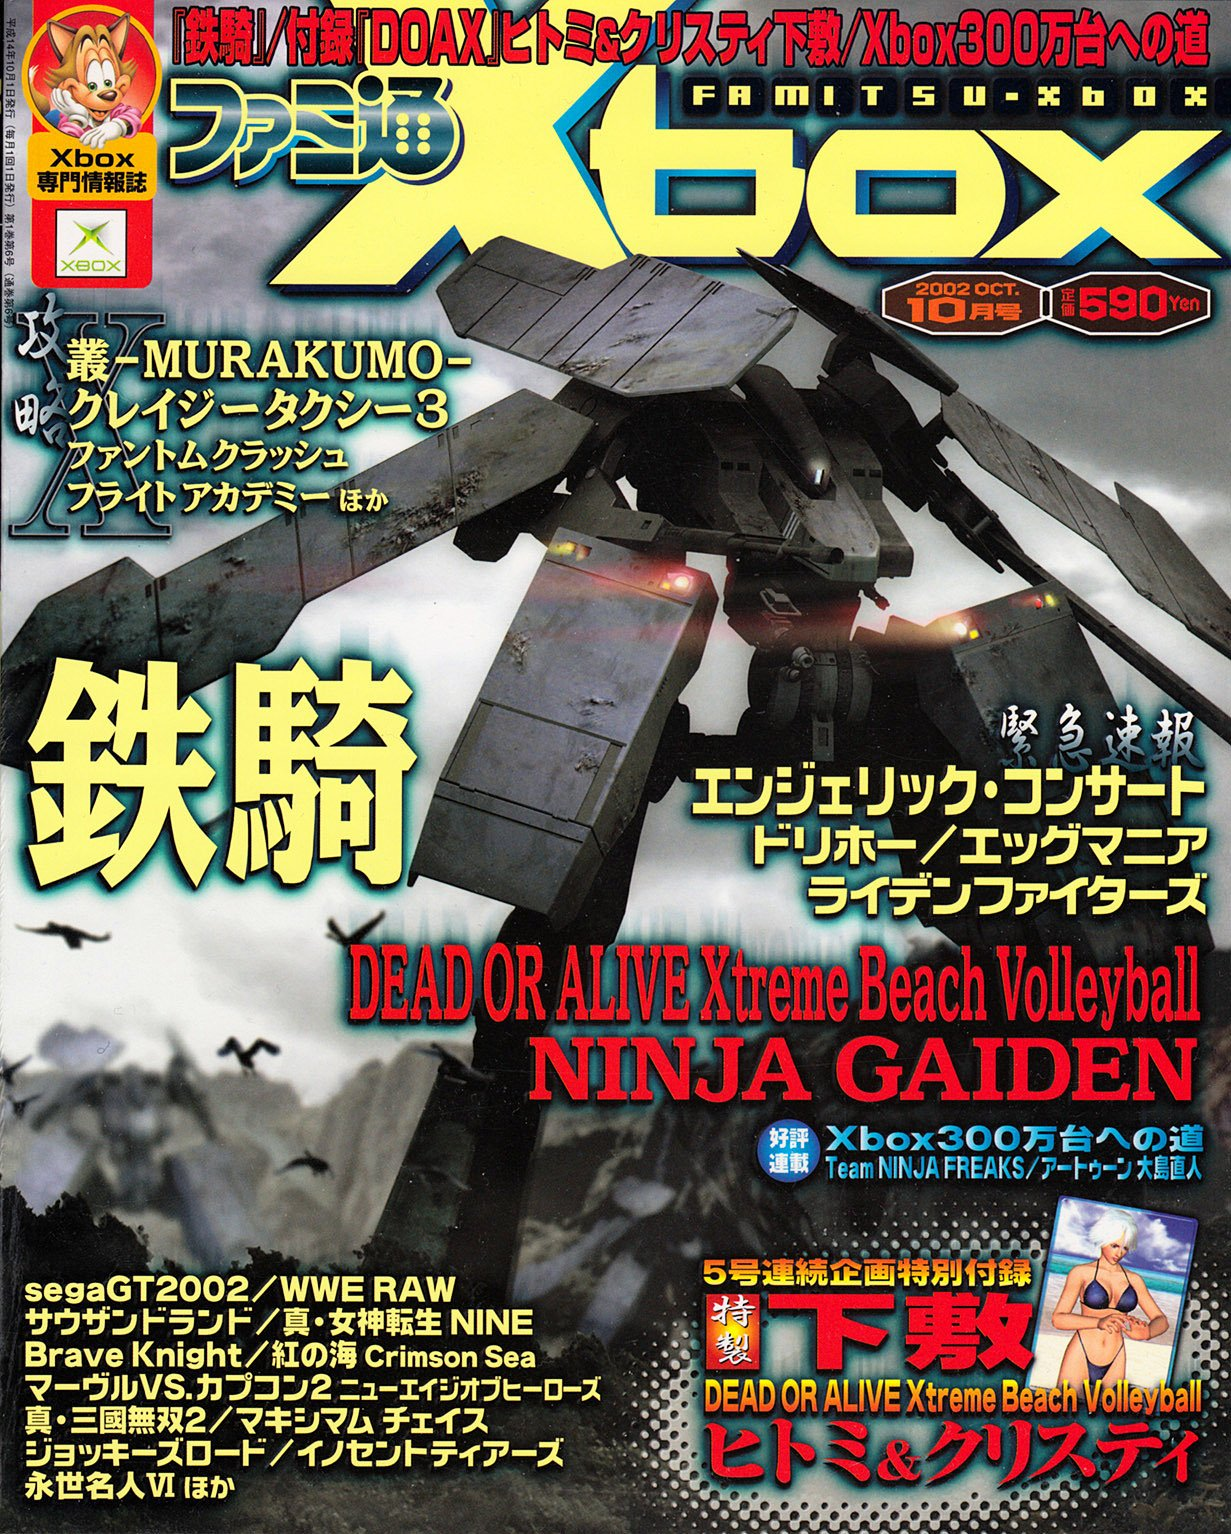 Famitsu Xbox Issue 008 (October 2002)